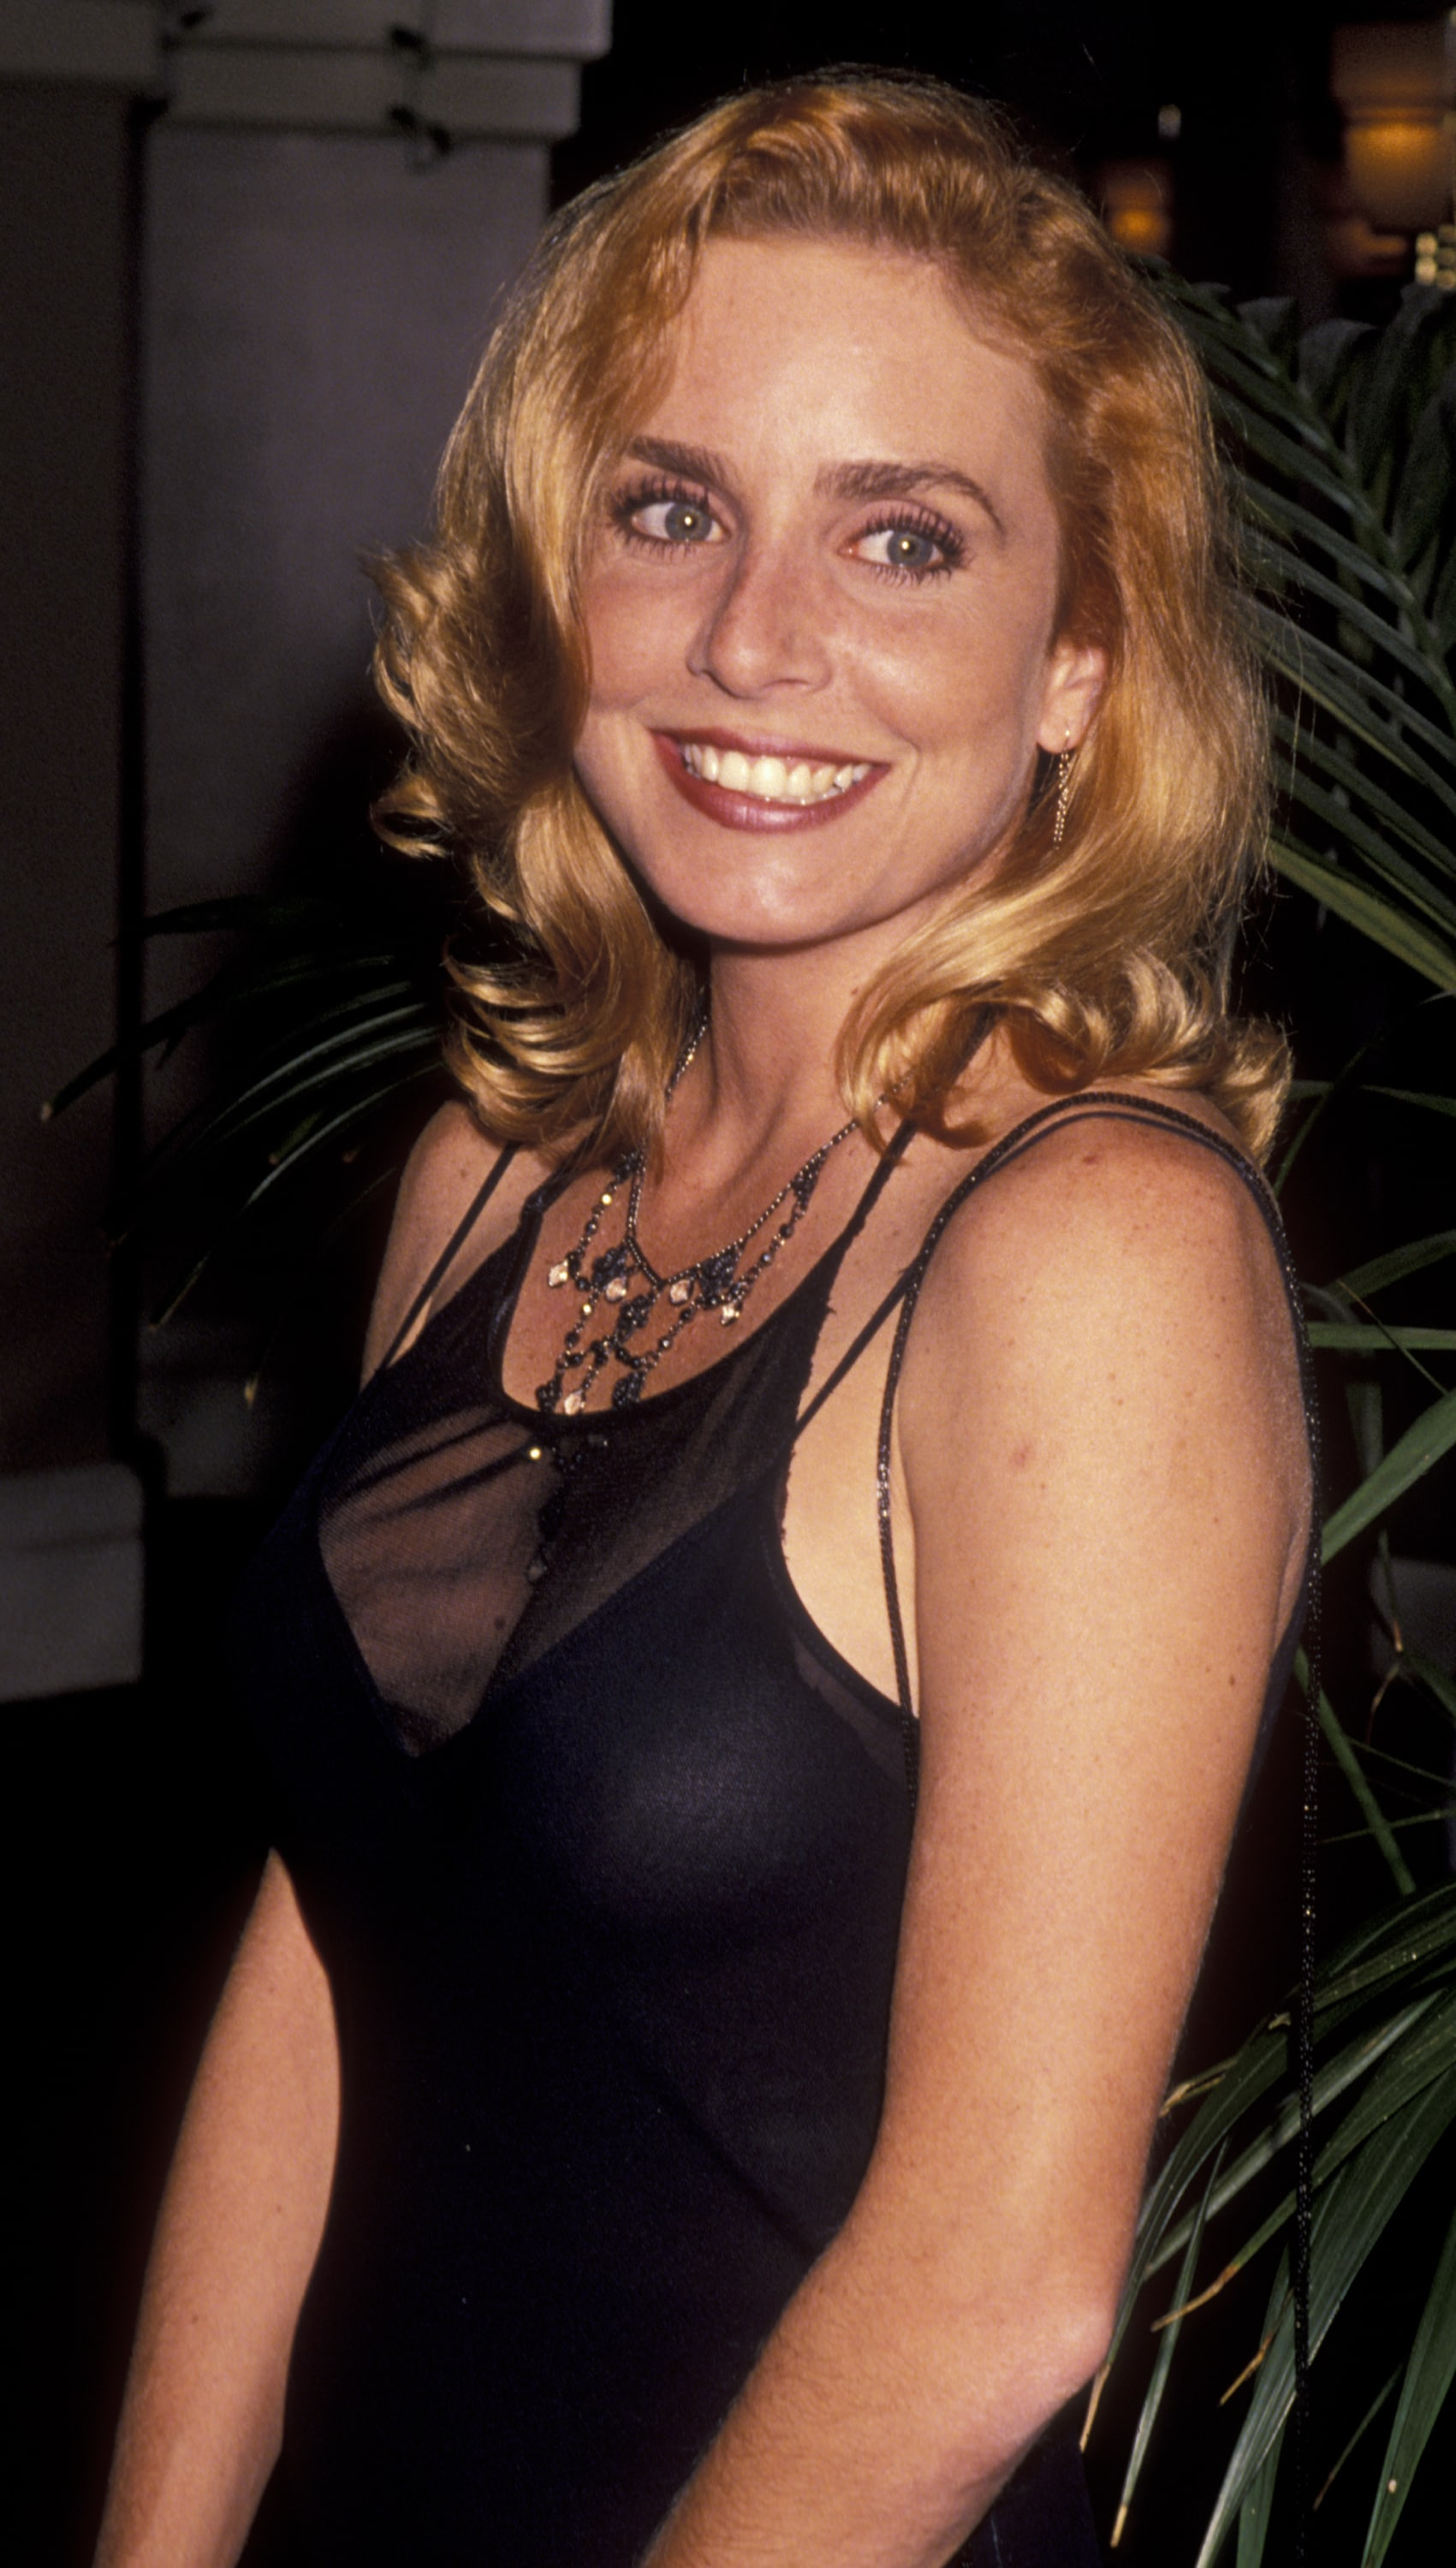 Alyssa Labelle Hot charlie's angels' cheryl ladd to meet new charlie on fx's